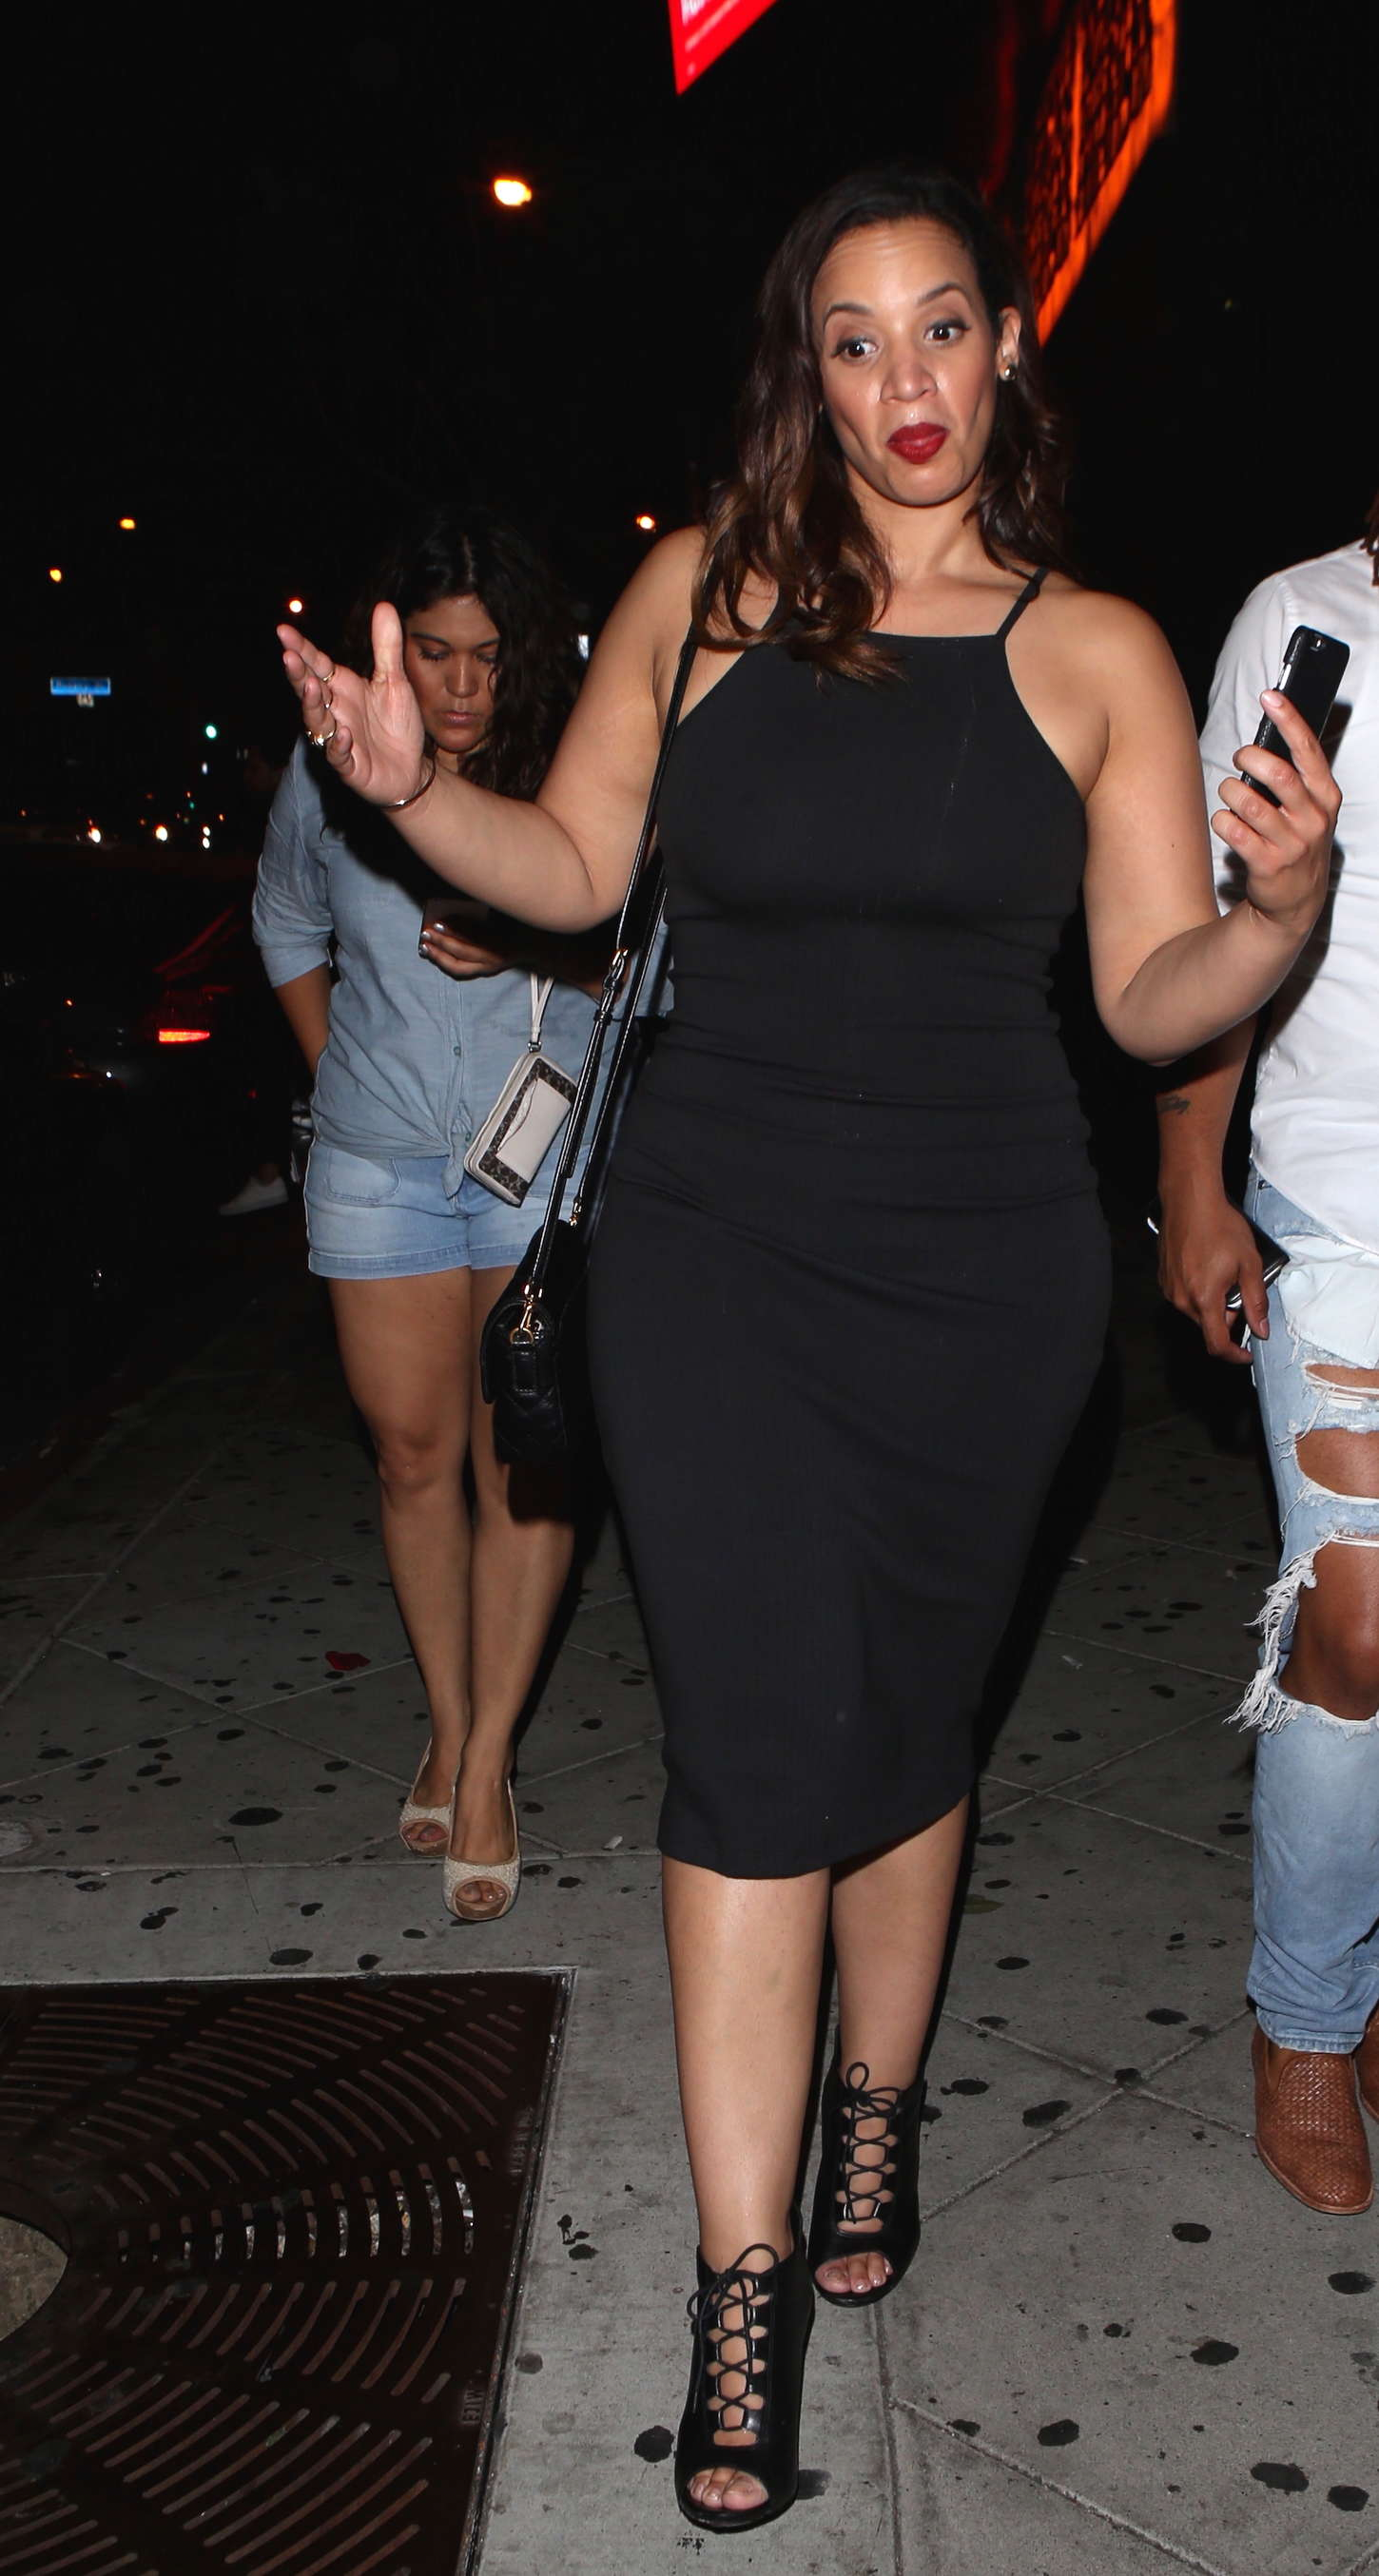 Dascha Polanco in Los Angeles